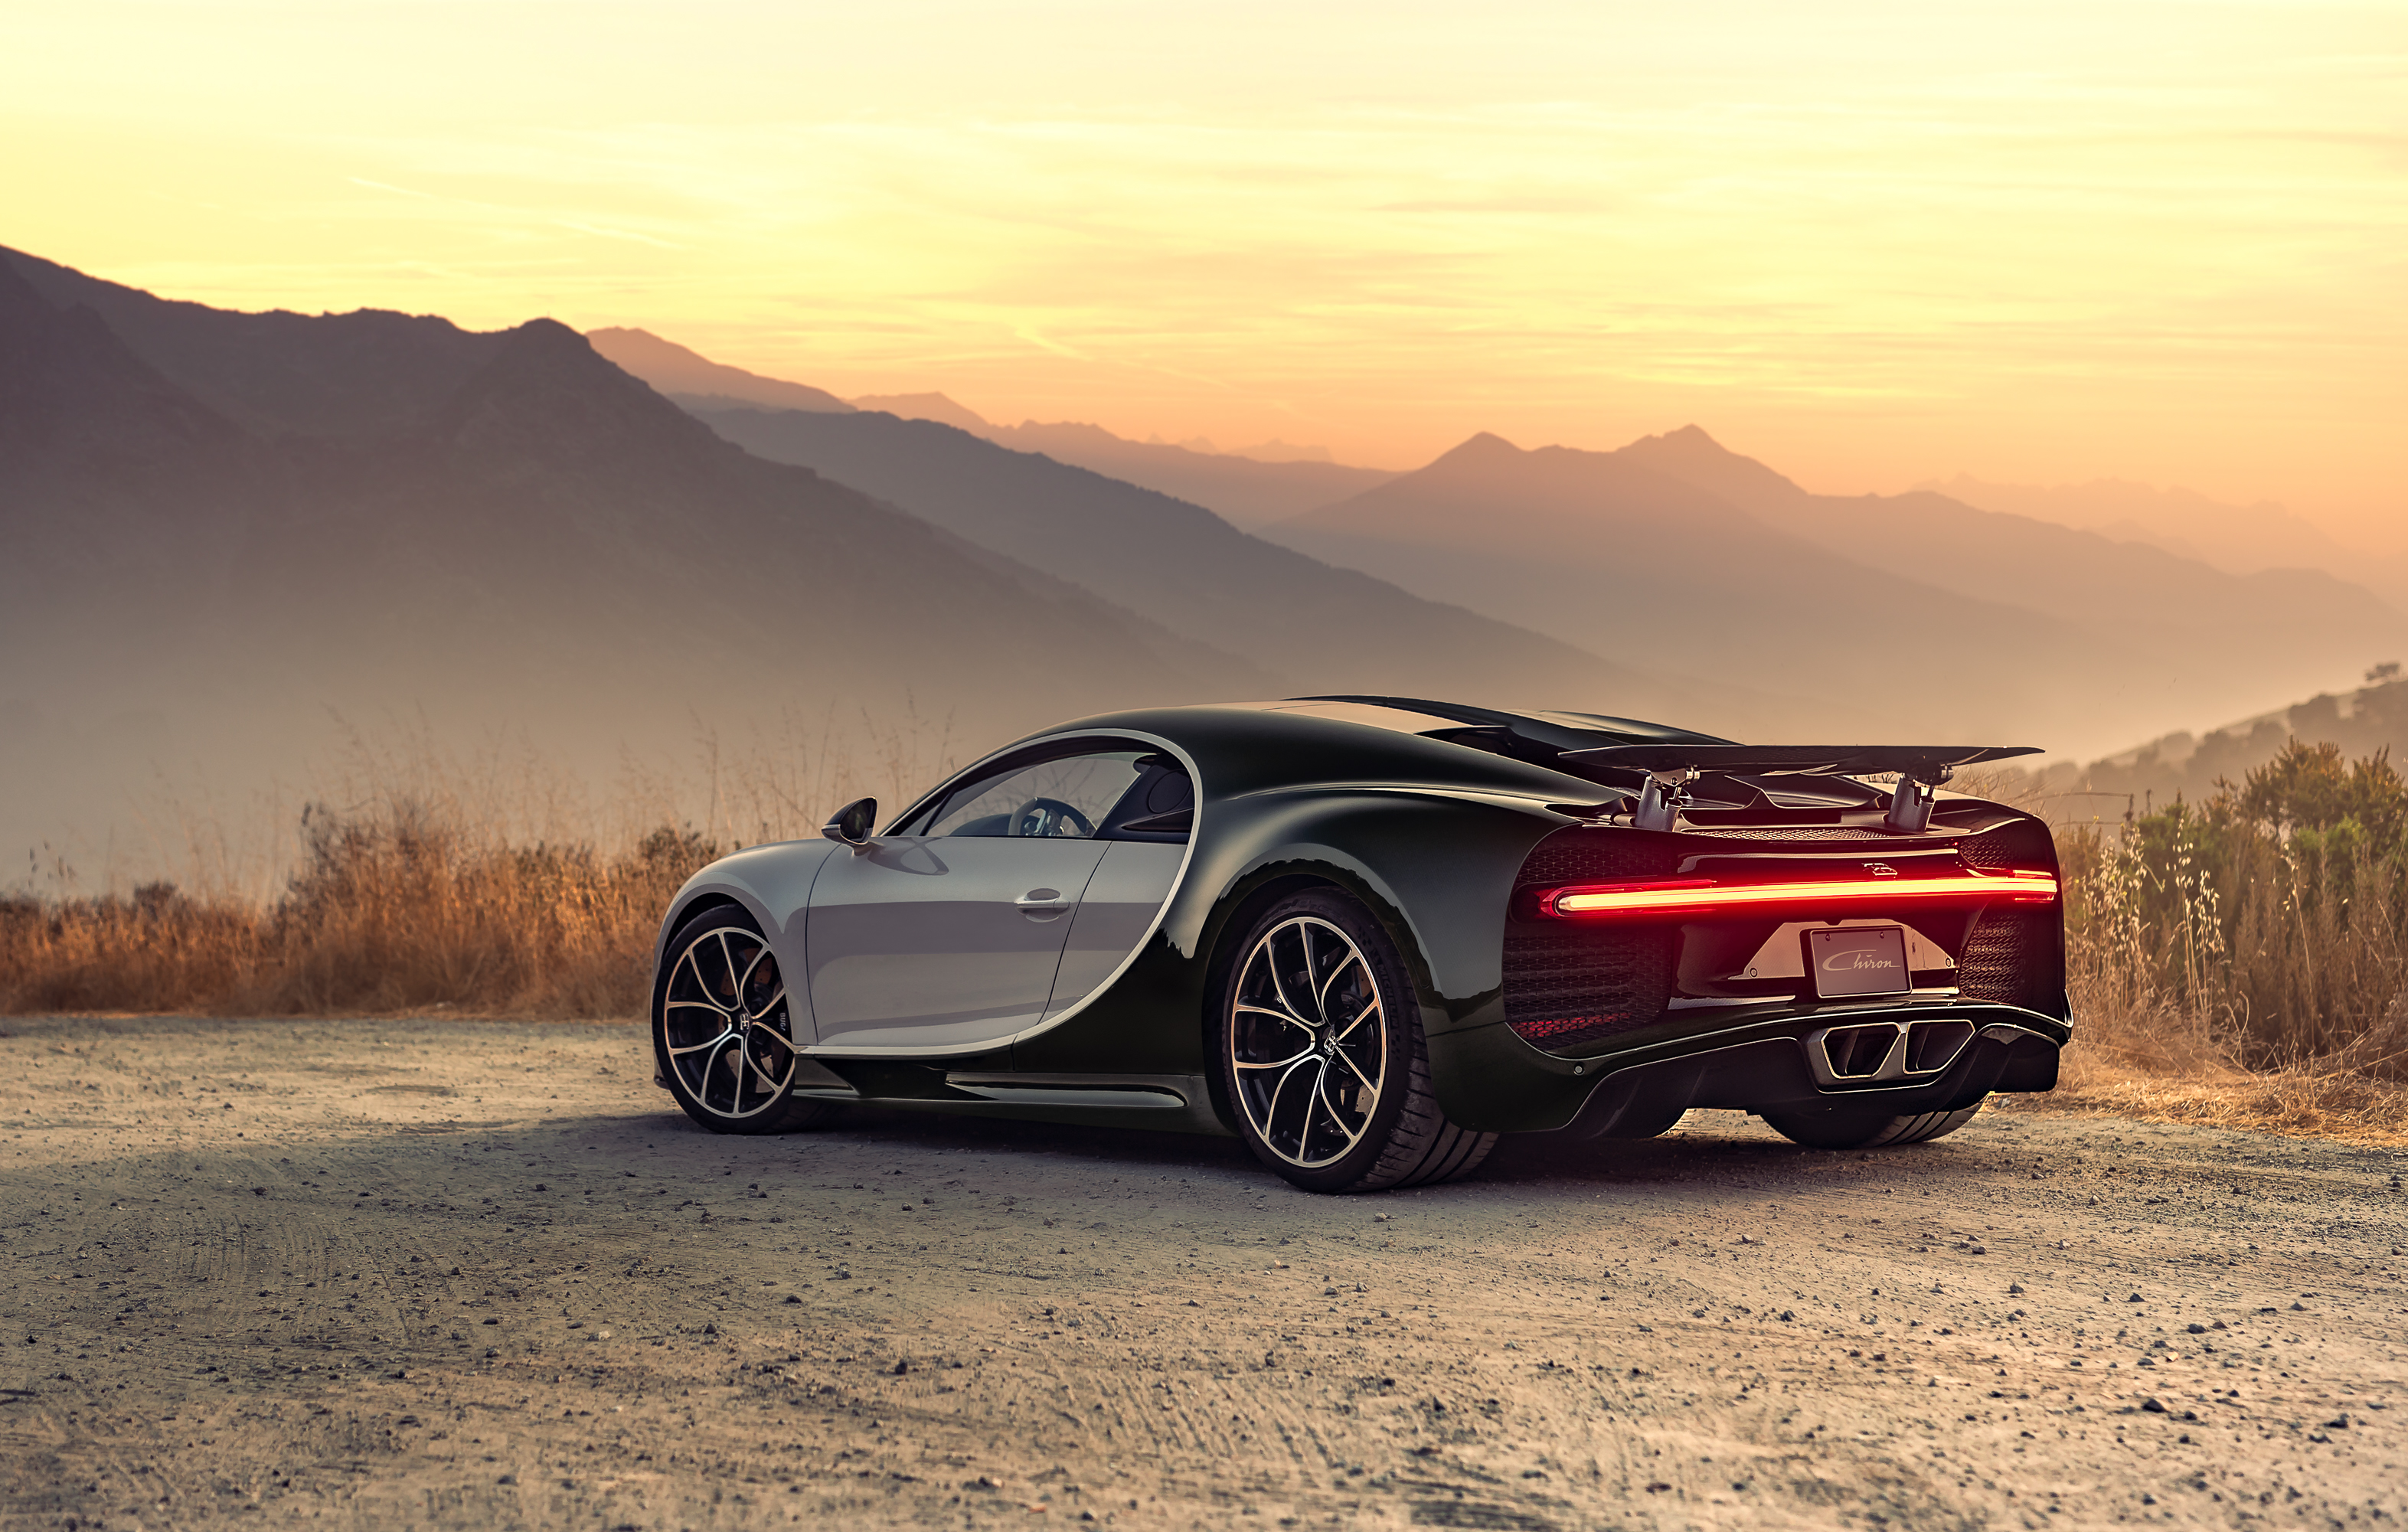 Bugatti Chiron Rear 4k, HD Cars, 4k Wallpapers, Images